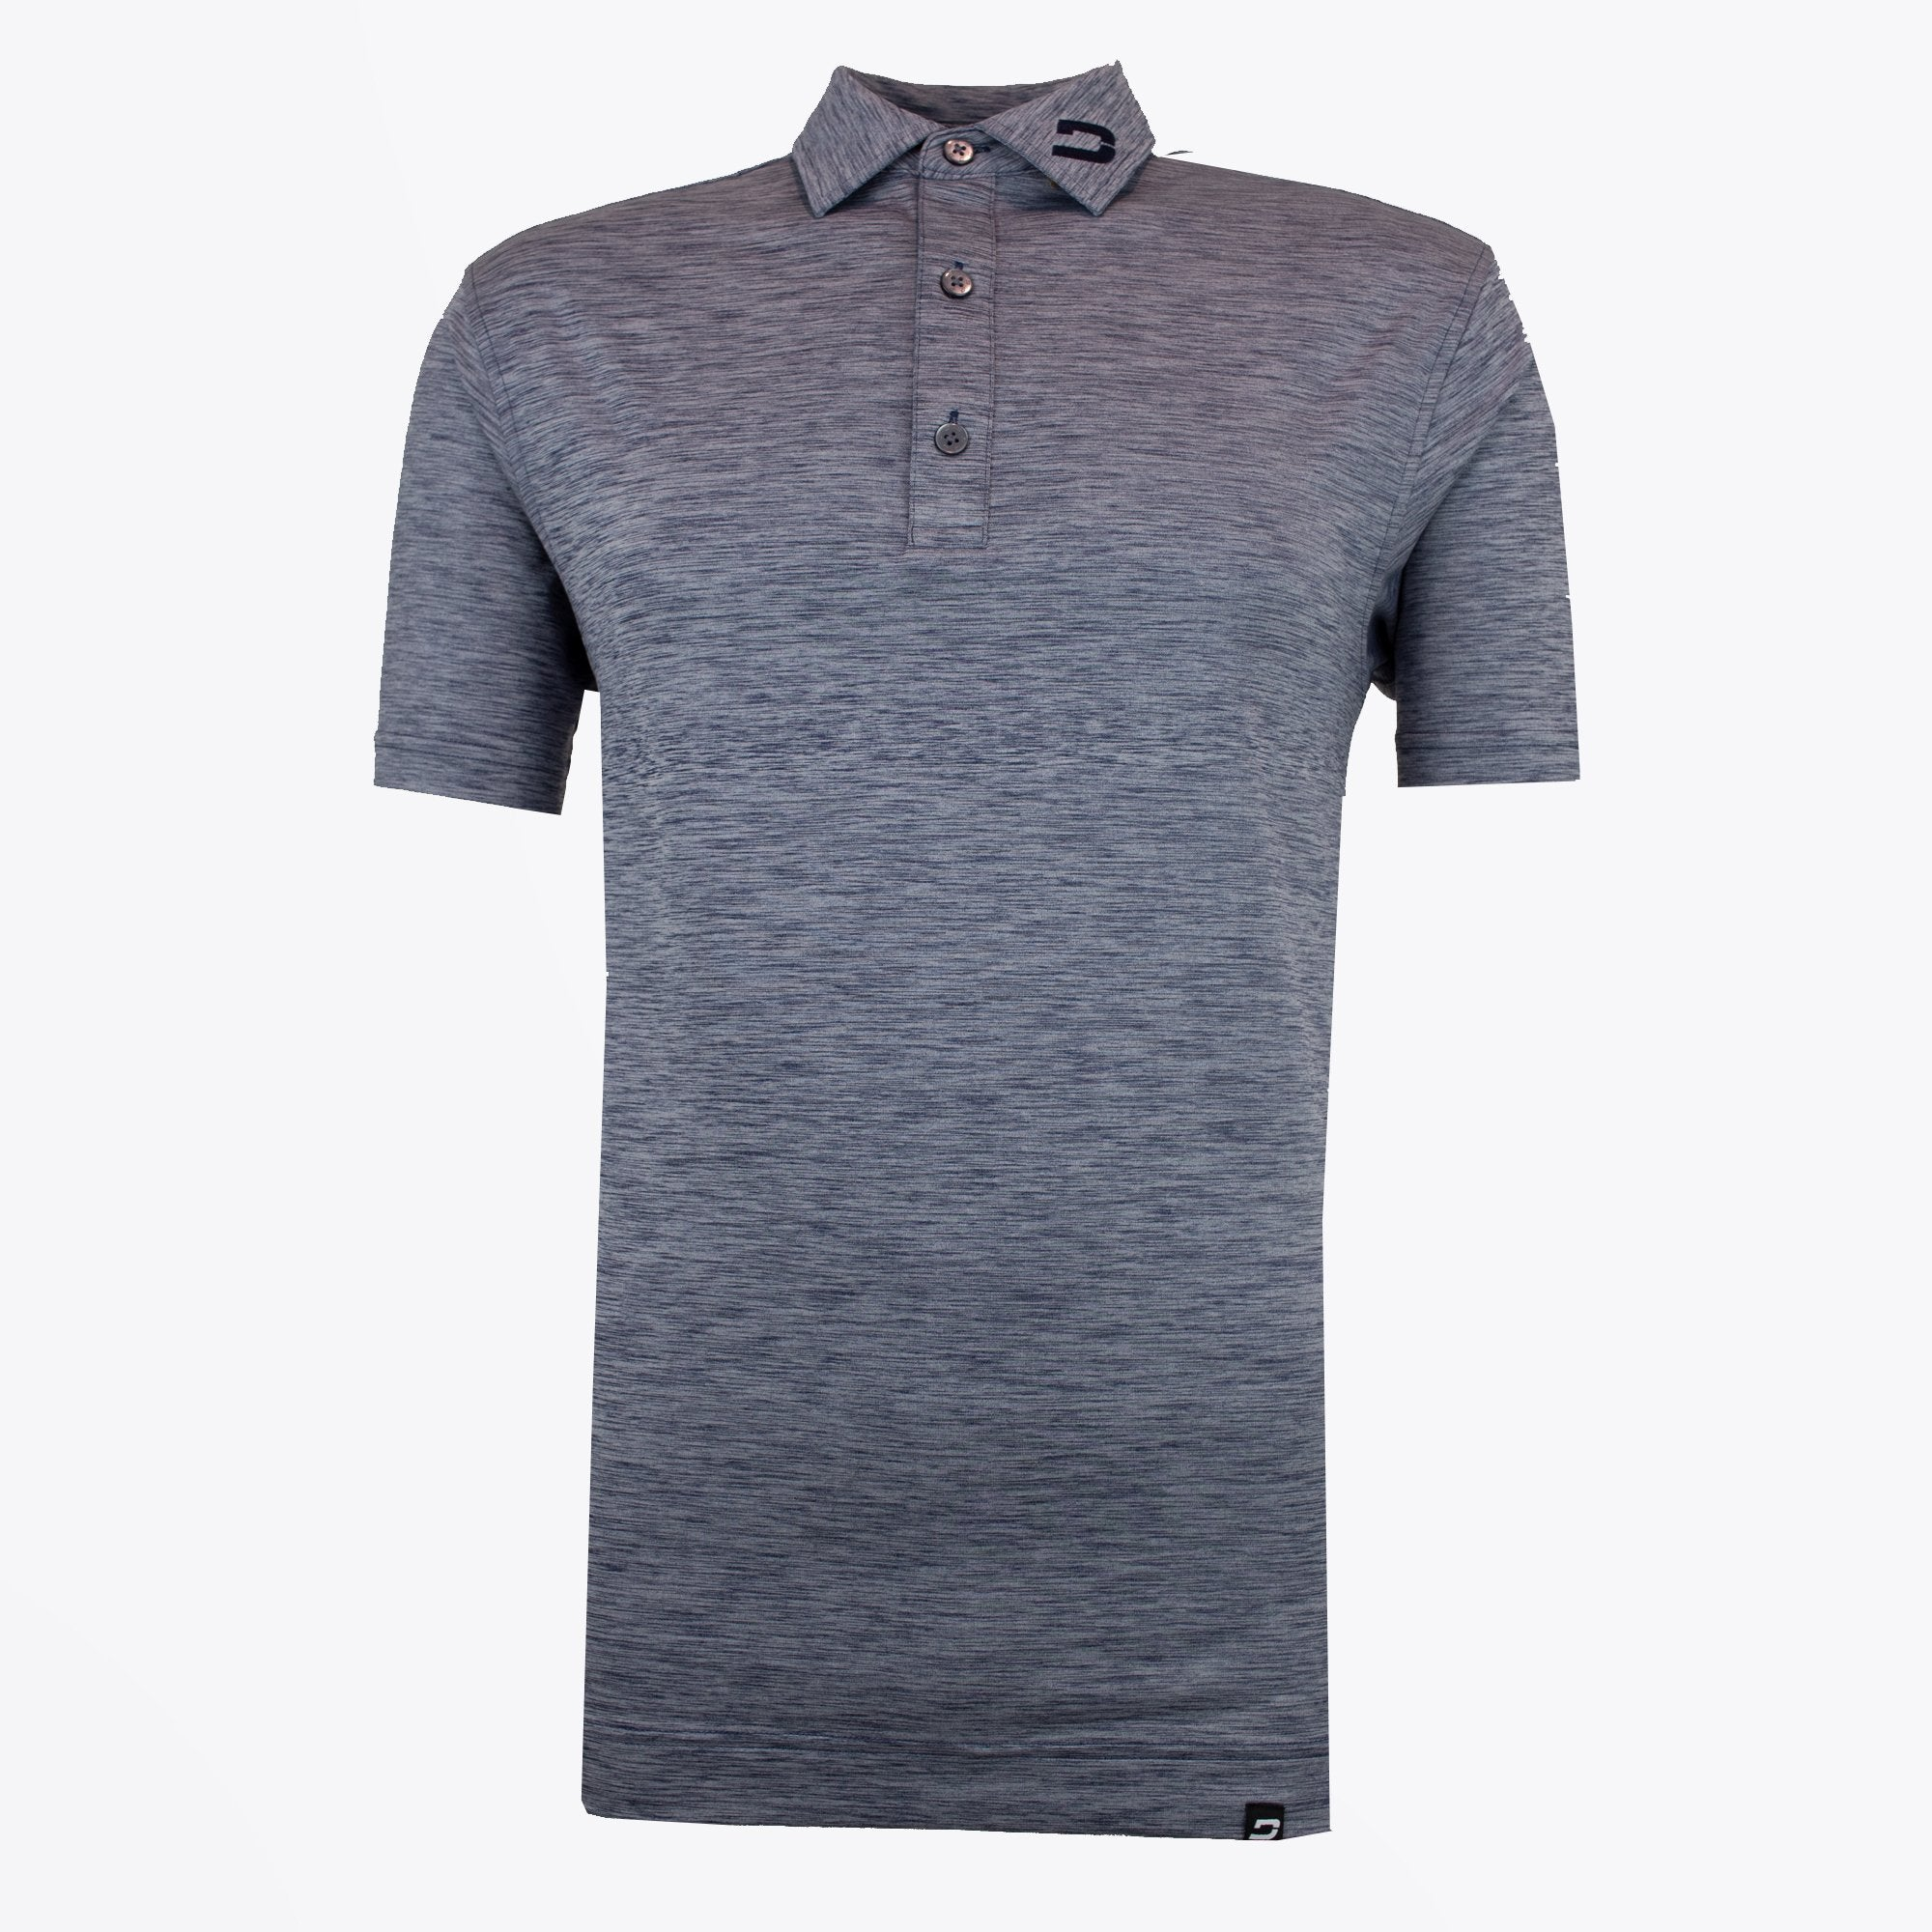 Druids Golf - Mens Flek Polo (Charcoal)